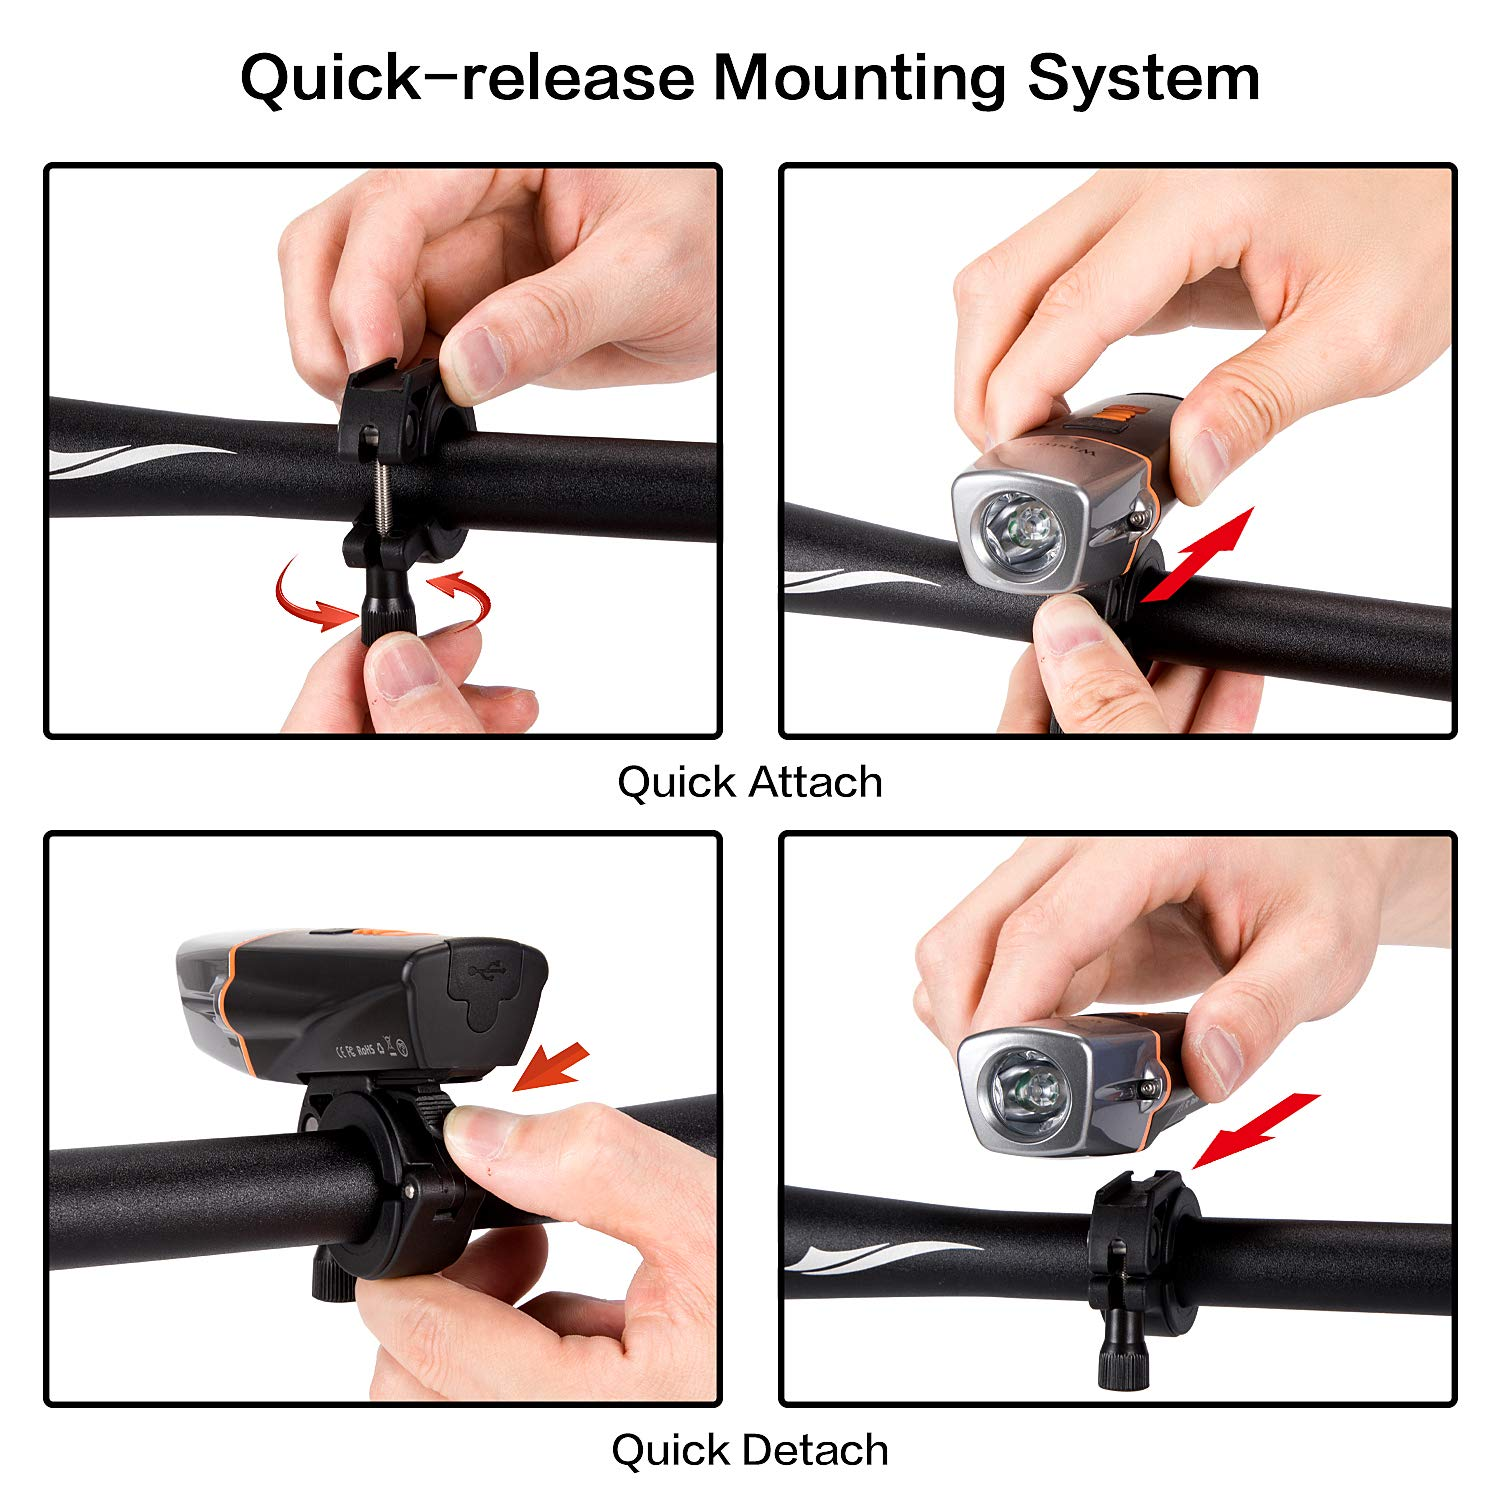 Mountain Runtime 10+ Hours 600 Lumen Super Bright Headlight Front Lights and Bike Taillight Road Updated 2019 Version 6 Light Mode Fits All Bicycles Wastou USB Rechargeable Bike Light Set